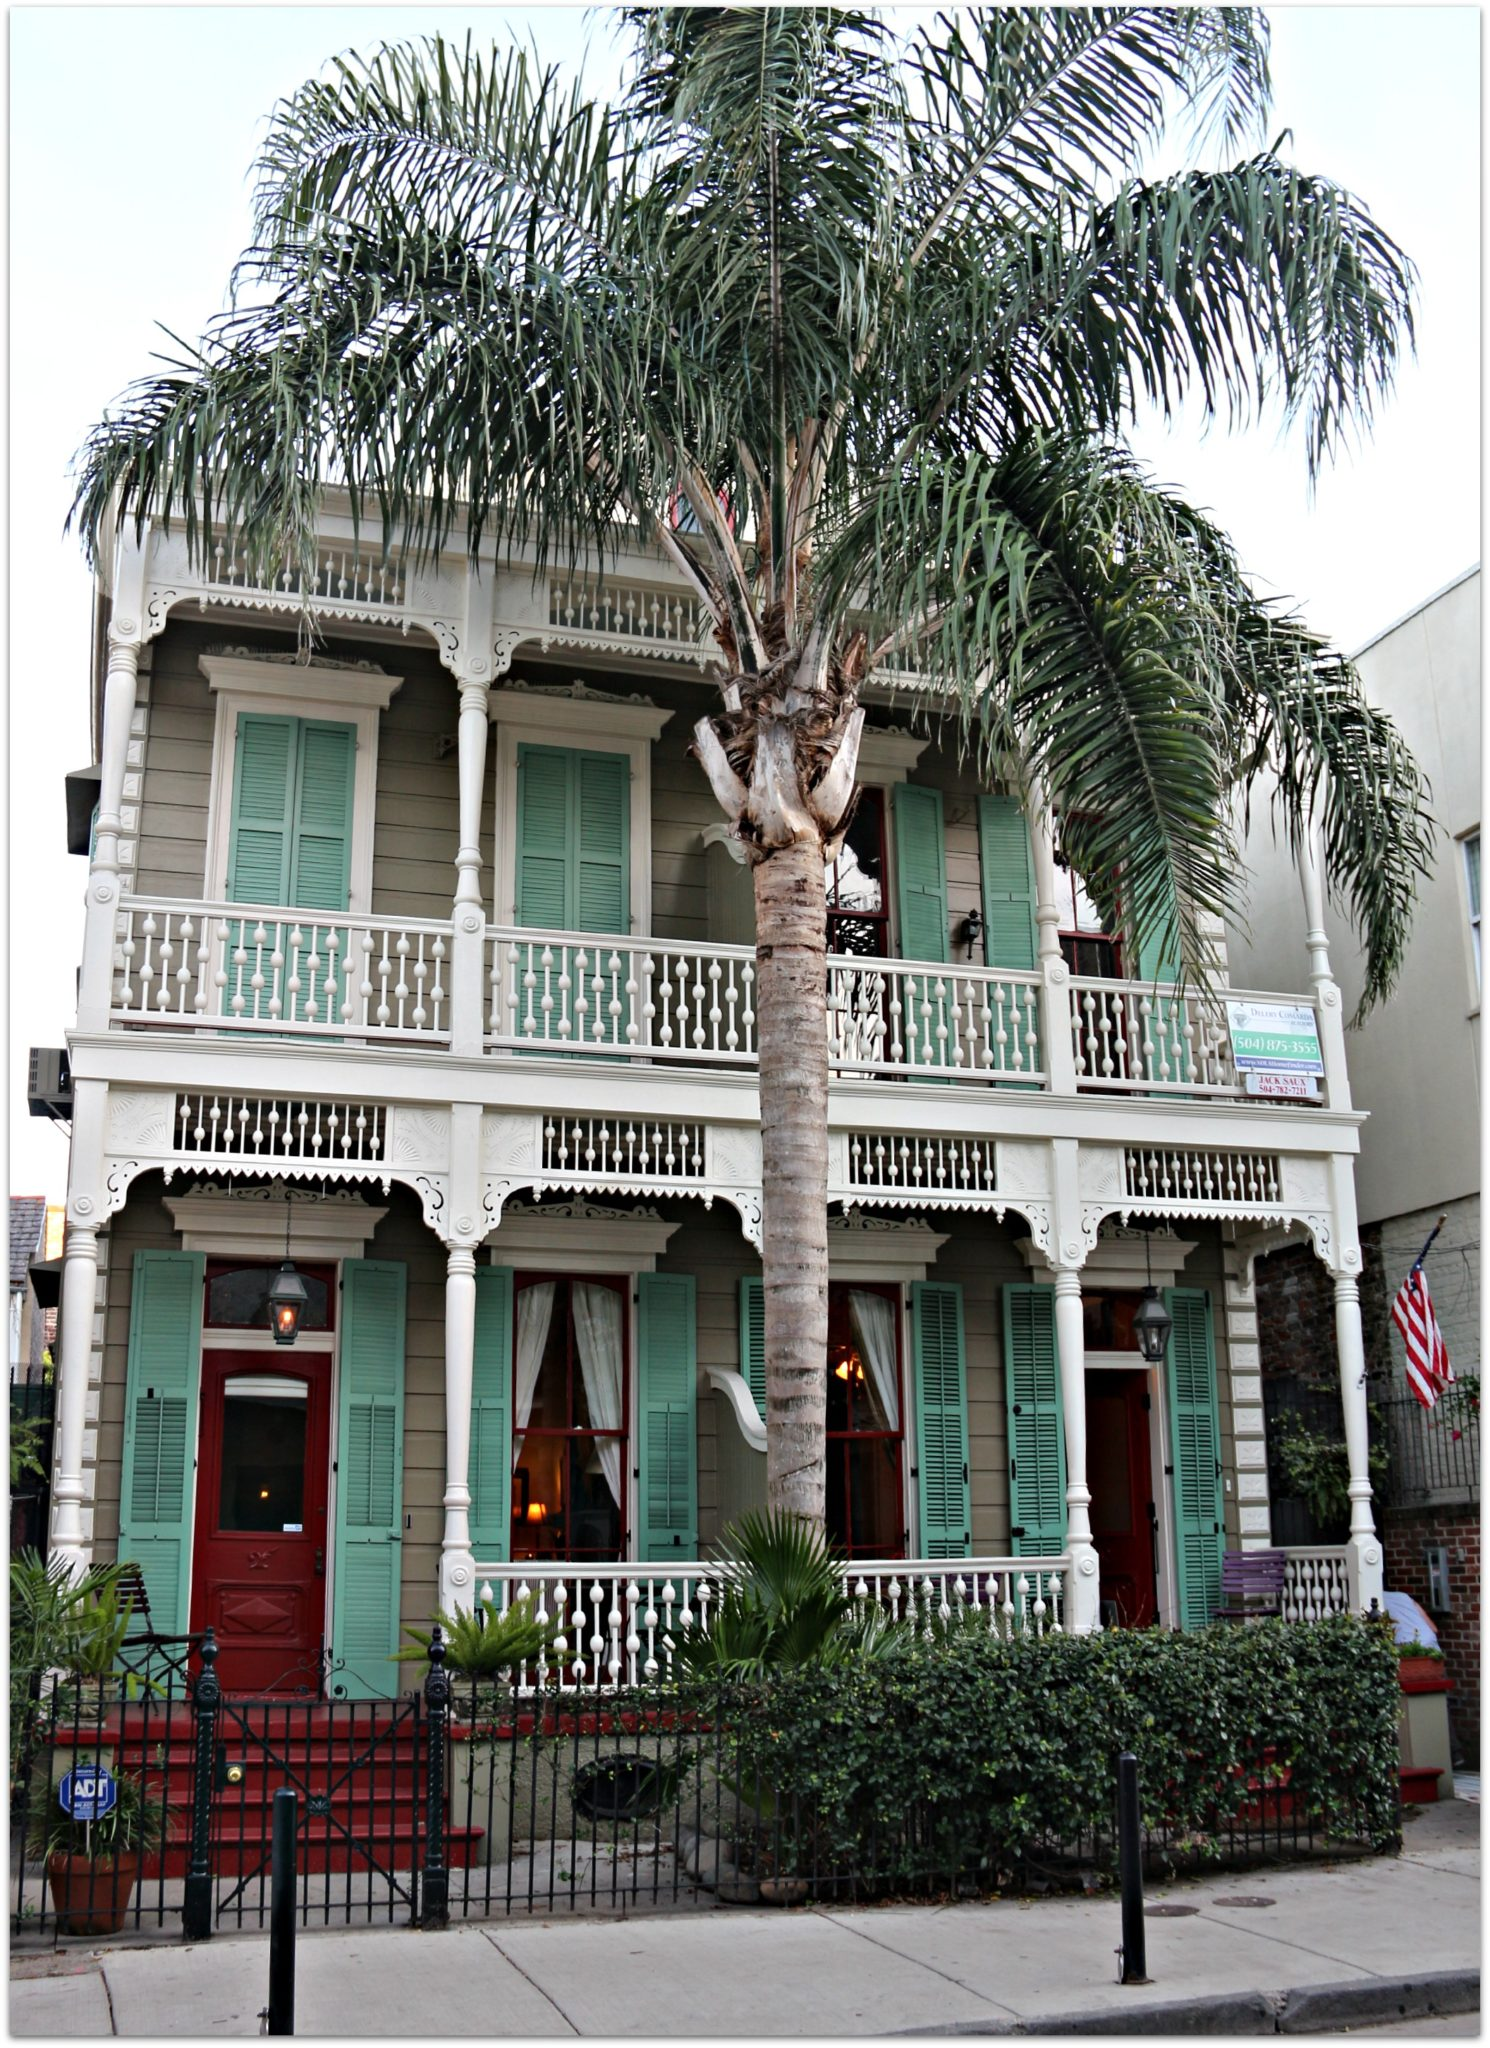 One of the condos for sale in French Quarter, LA